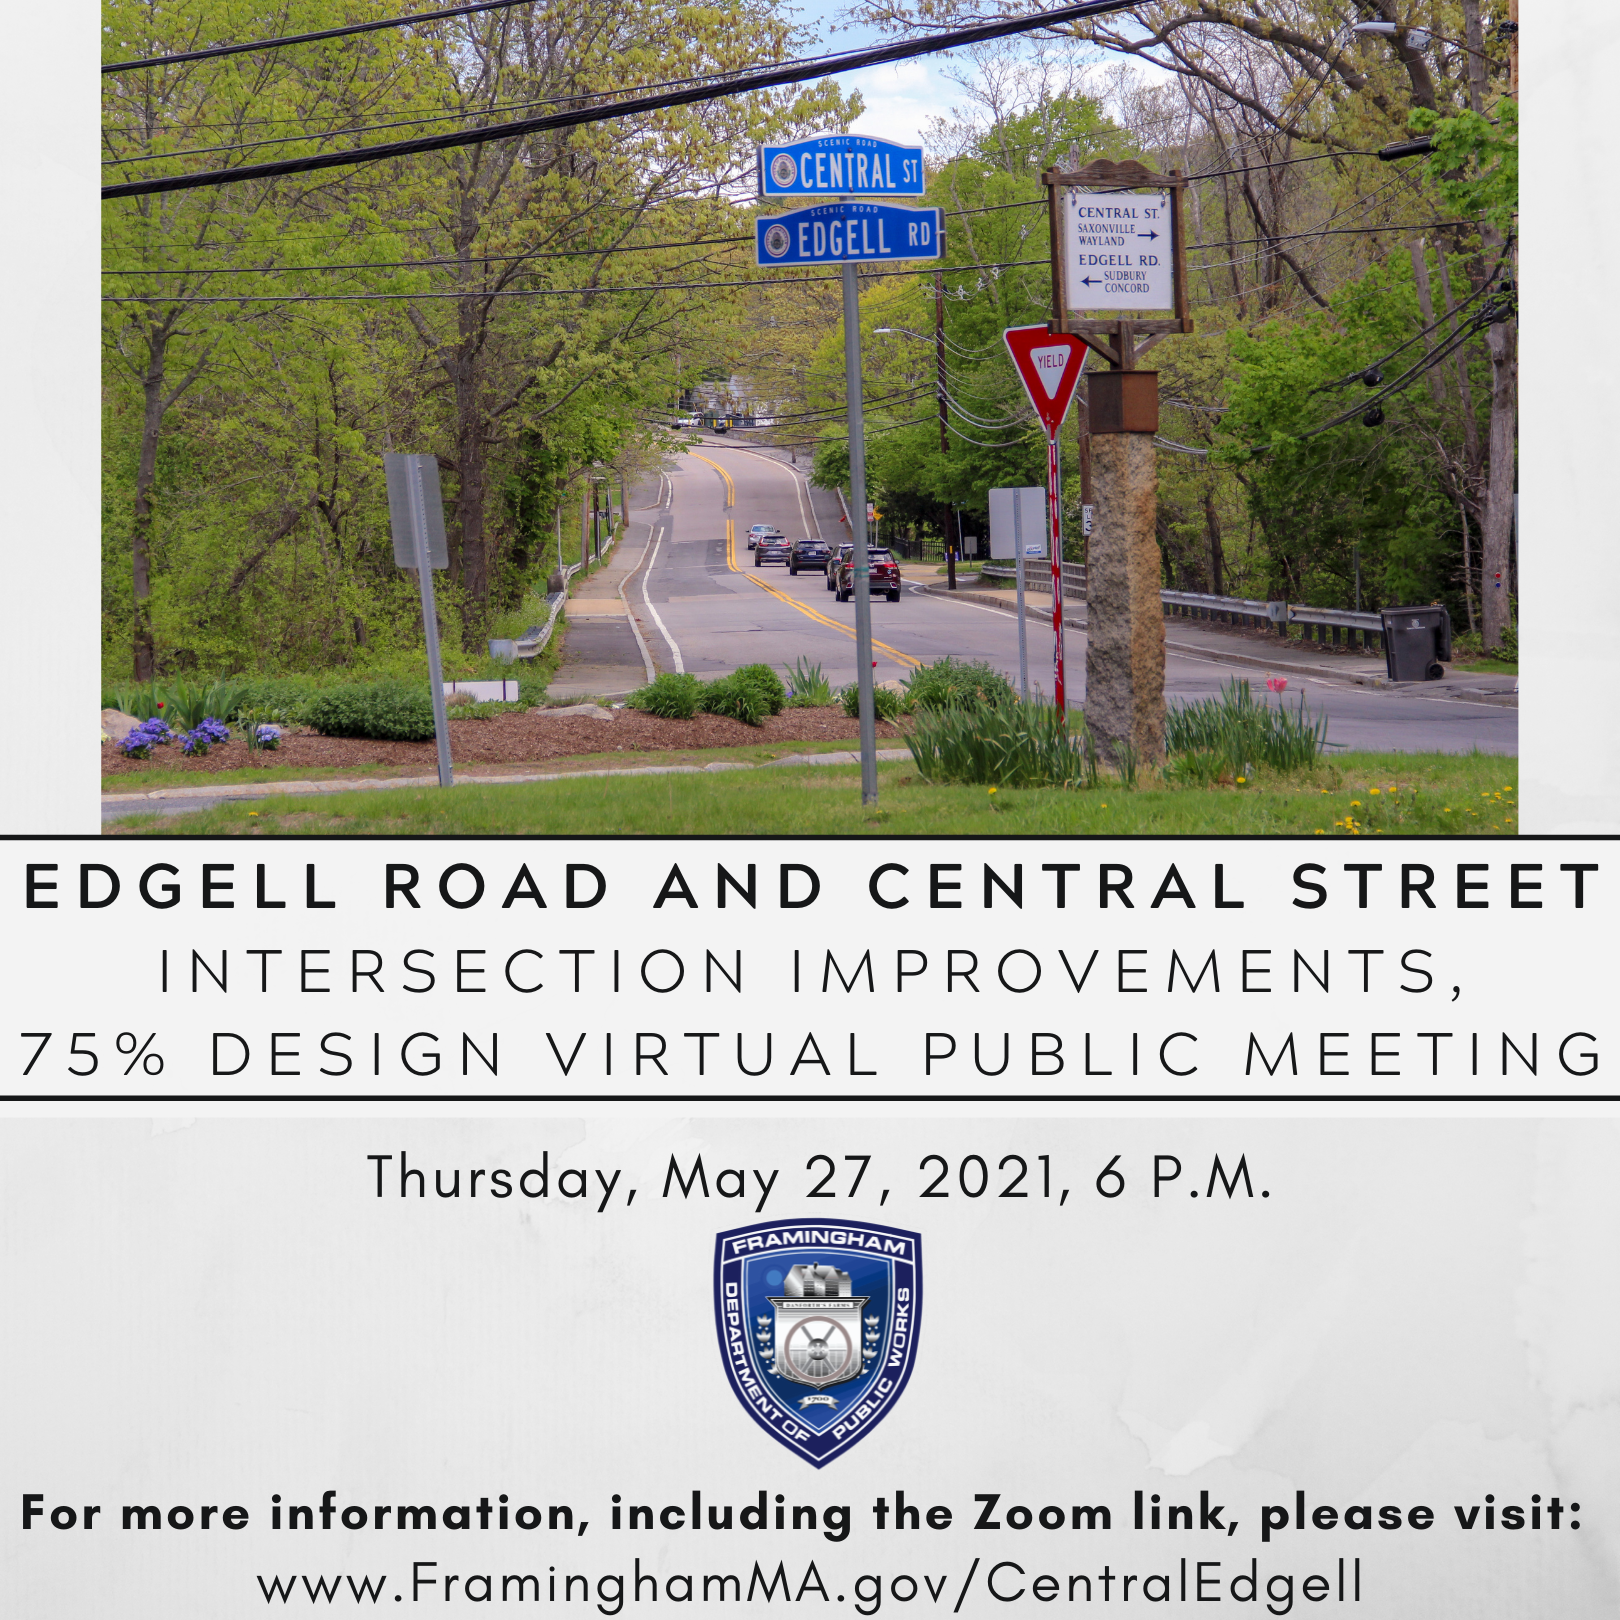 Graphic with image of Edgell Road/Central Street. Text: Edgell Road and Central St. Intersection